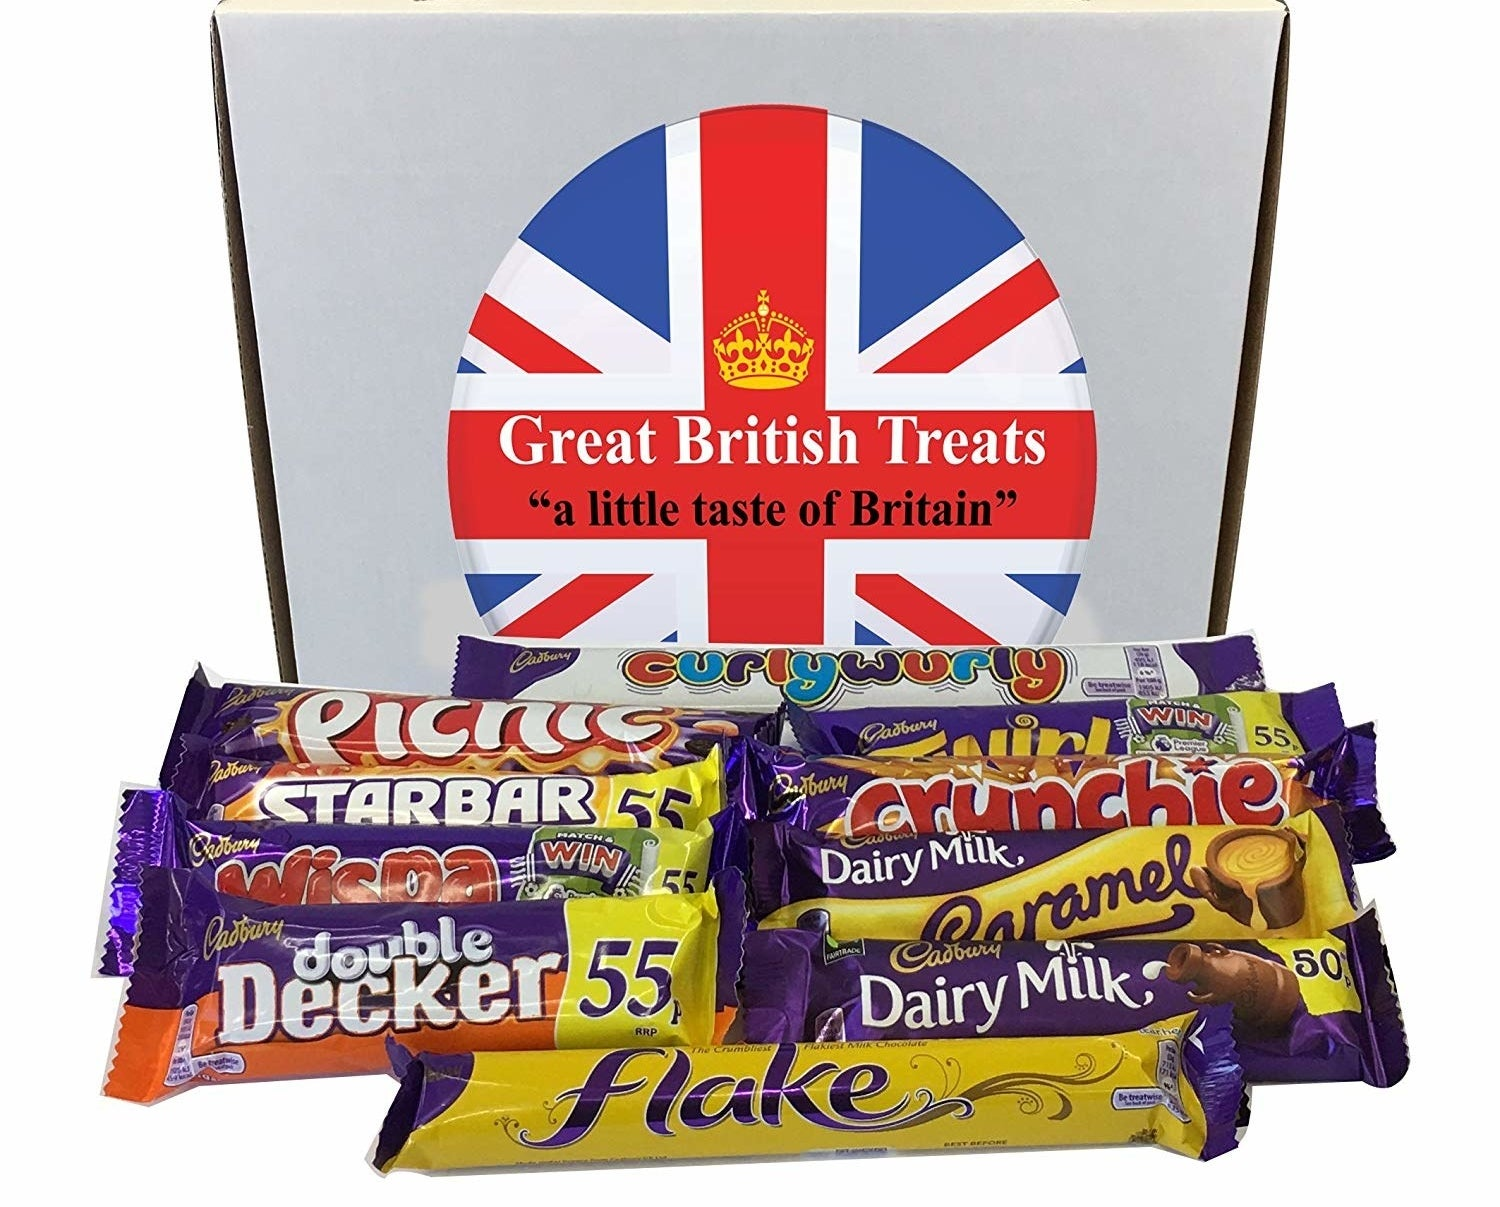 Includes one of each: Flake, Picnic, Double Decker, Crunchie, Dairy Milk, Starbar, Wispa, Dairy Milk Caramel, Twirl, and Curly Wurly.Get it from Amazon for $11.20.